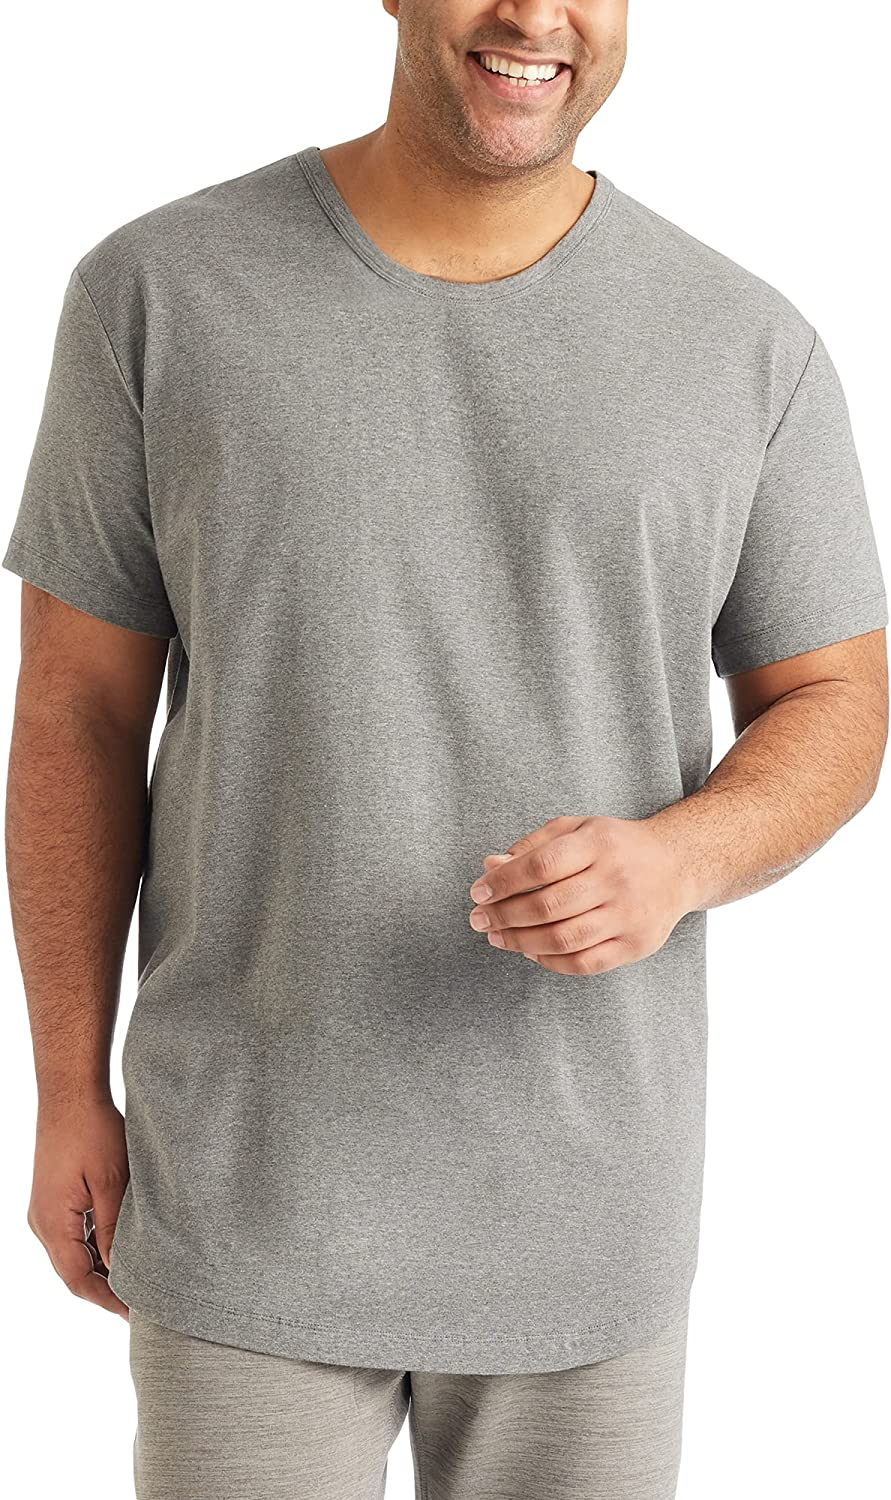 STRONGSIDE Men's T-Shirts – Big and Tall Shirts for Men – Longer Length Stretch Tee